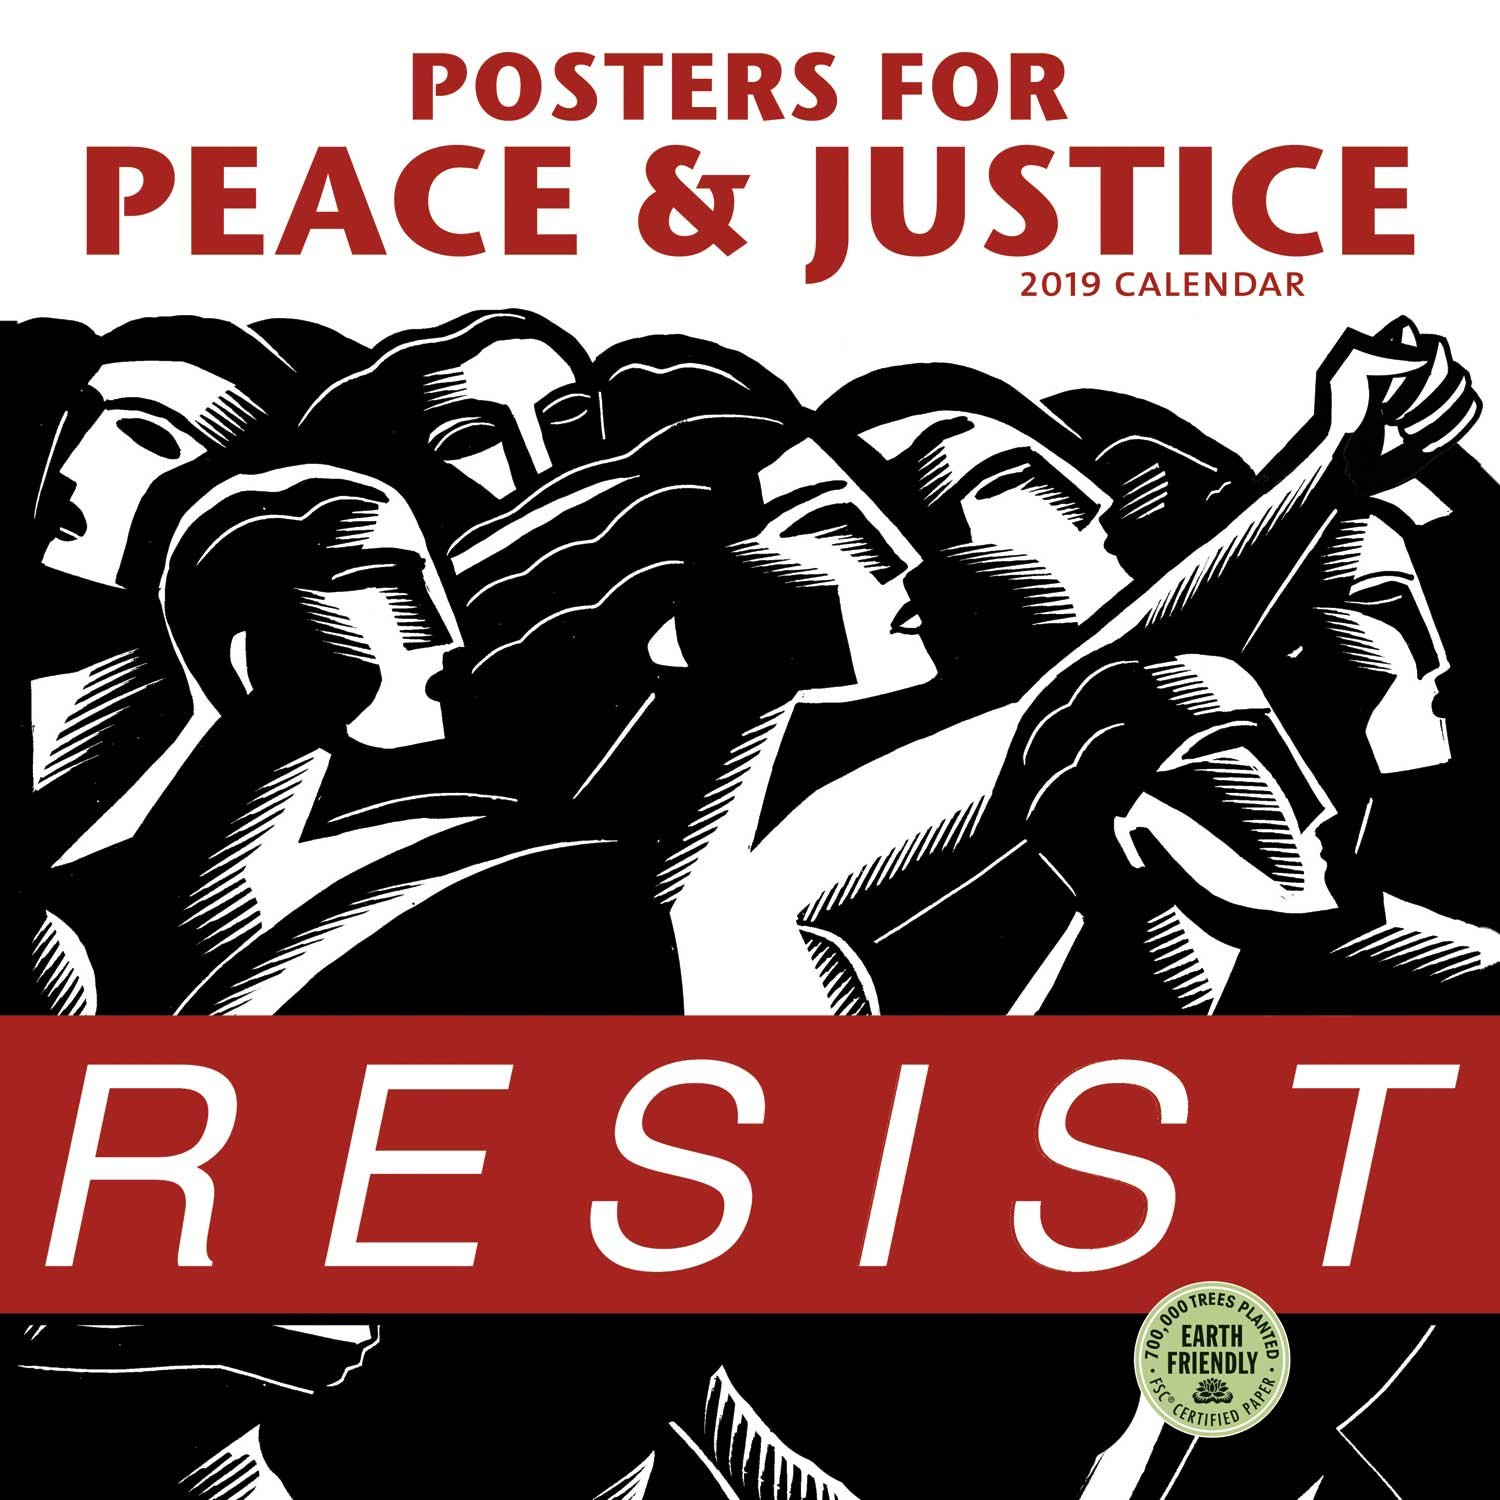 posters for peace justice 2019 wall calendar a history of modern political action posters